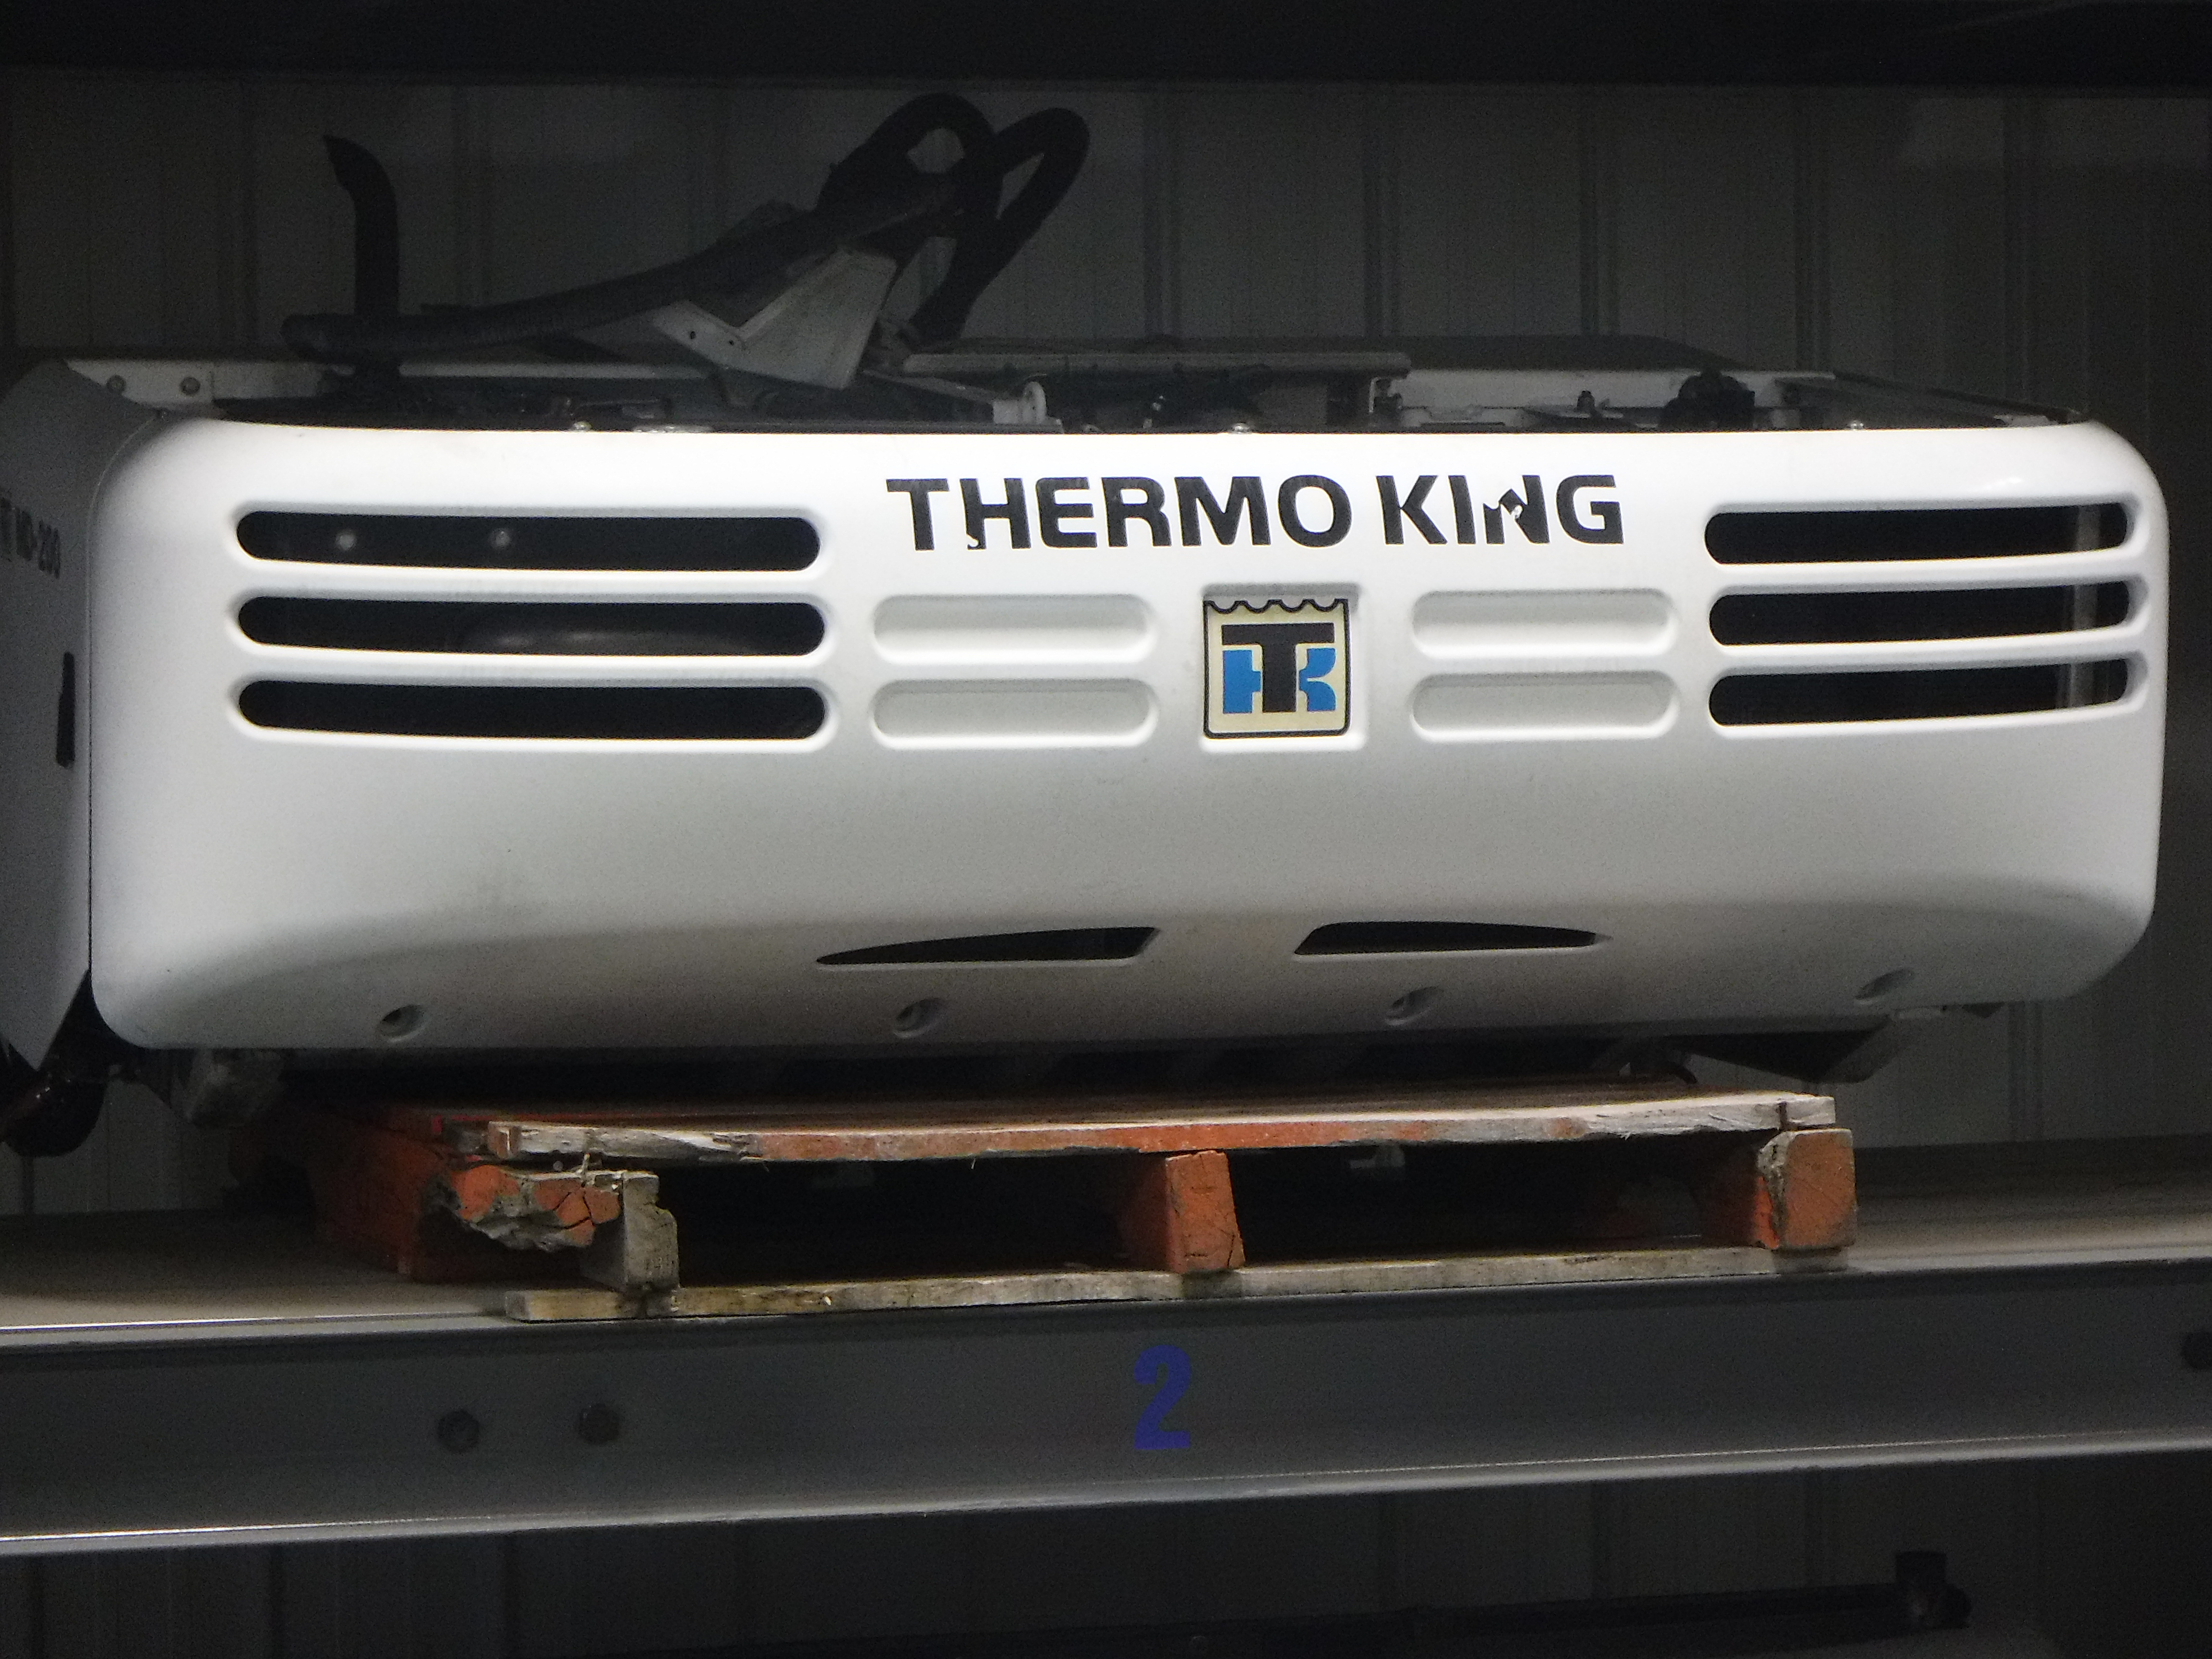 Thermo King, MD200-50 with Standby - Réfrigération Luc Daigle